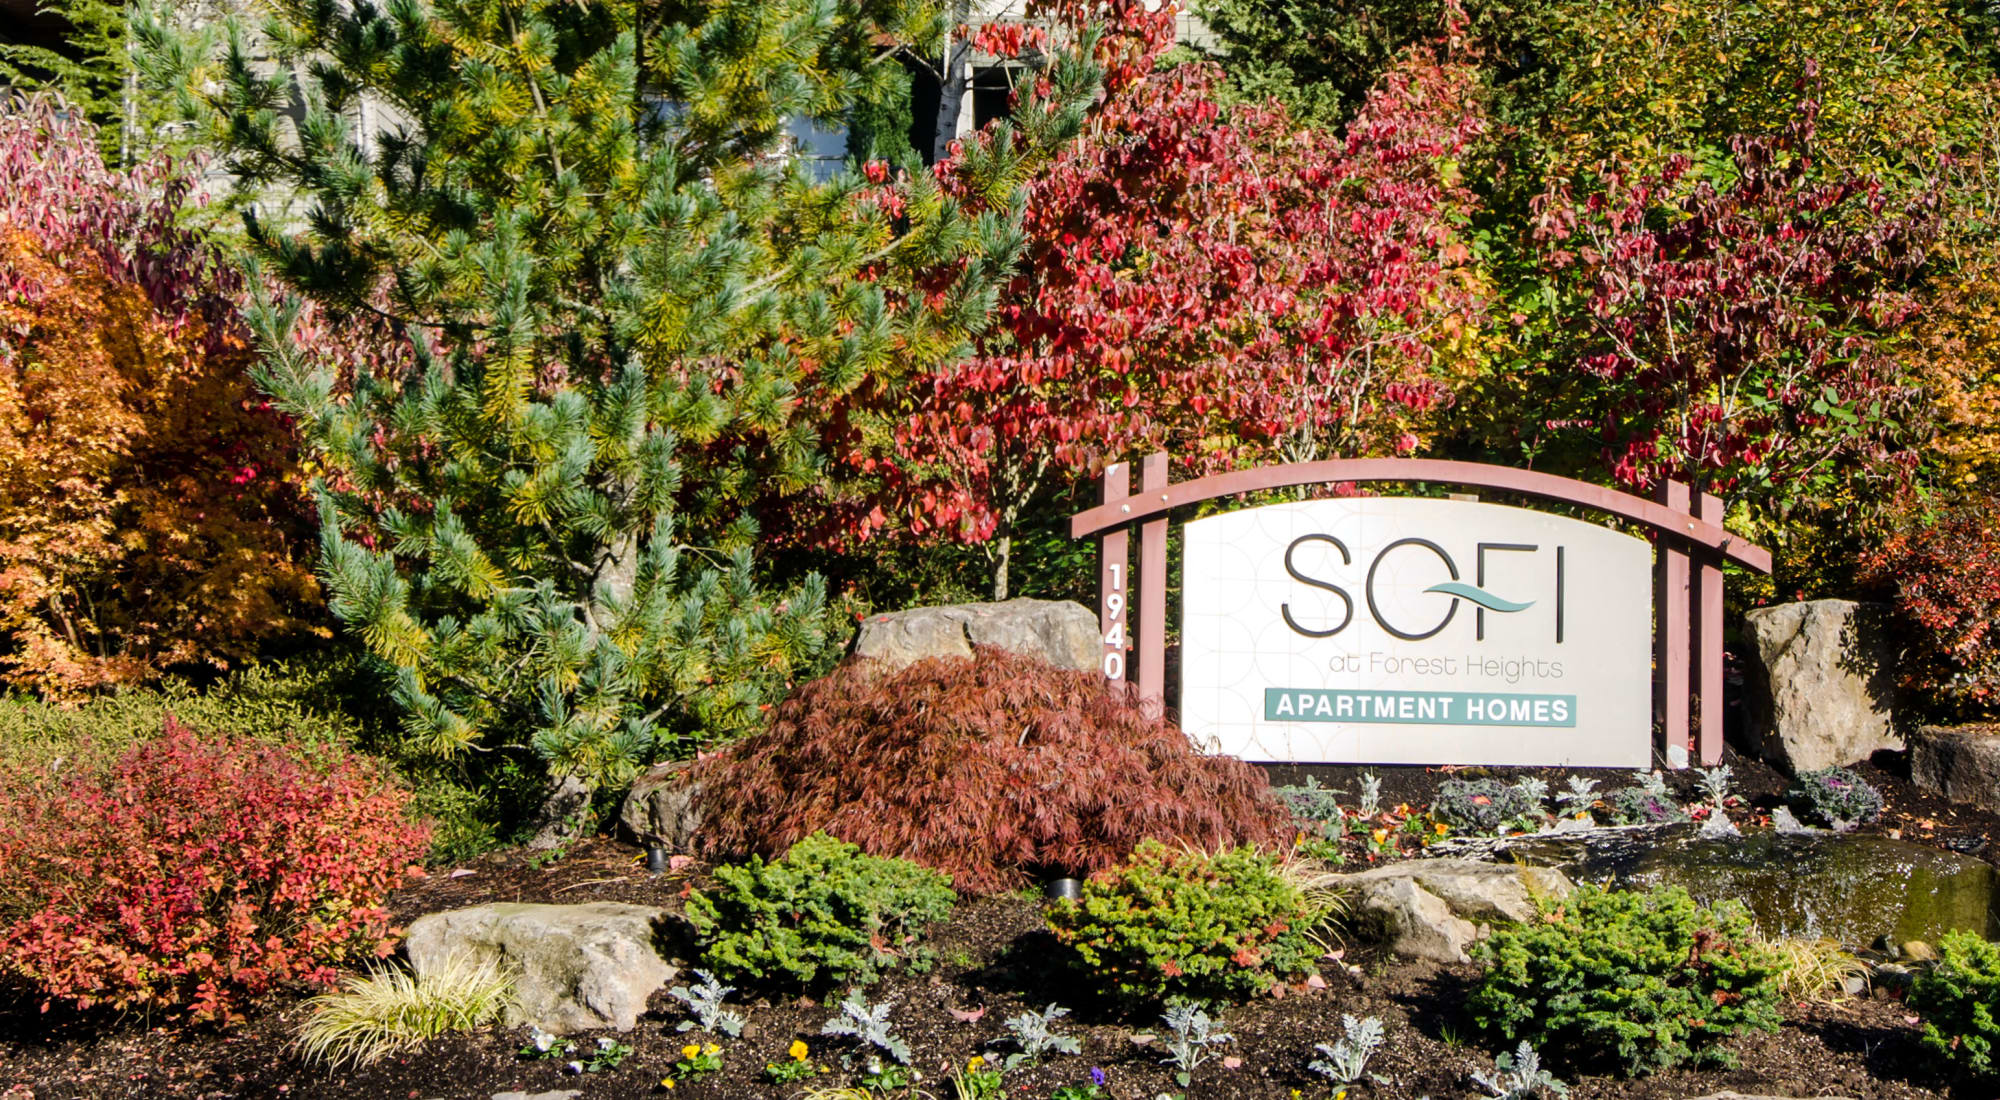 Neighborhood at Sofi at Forest Heights in Portland, Oregon